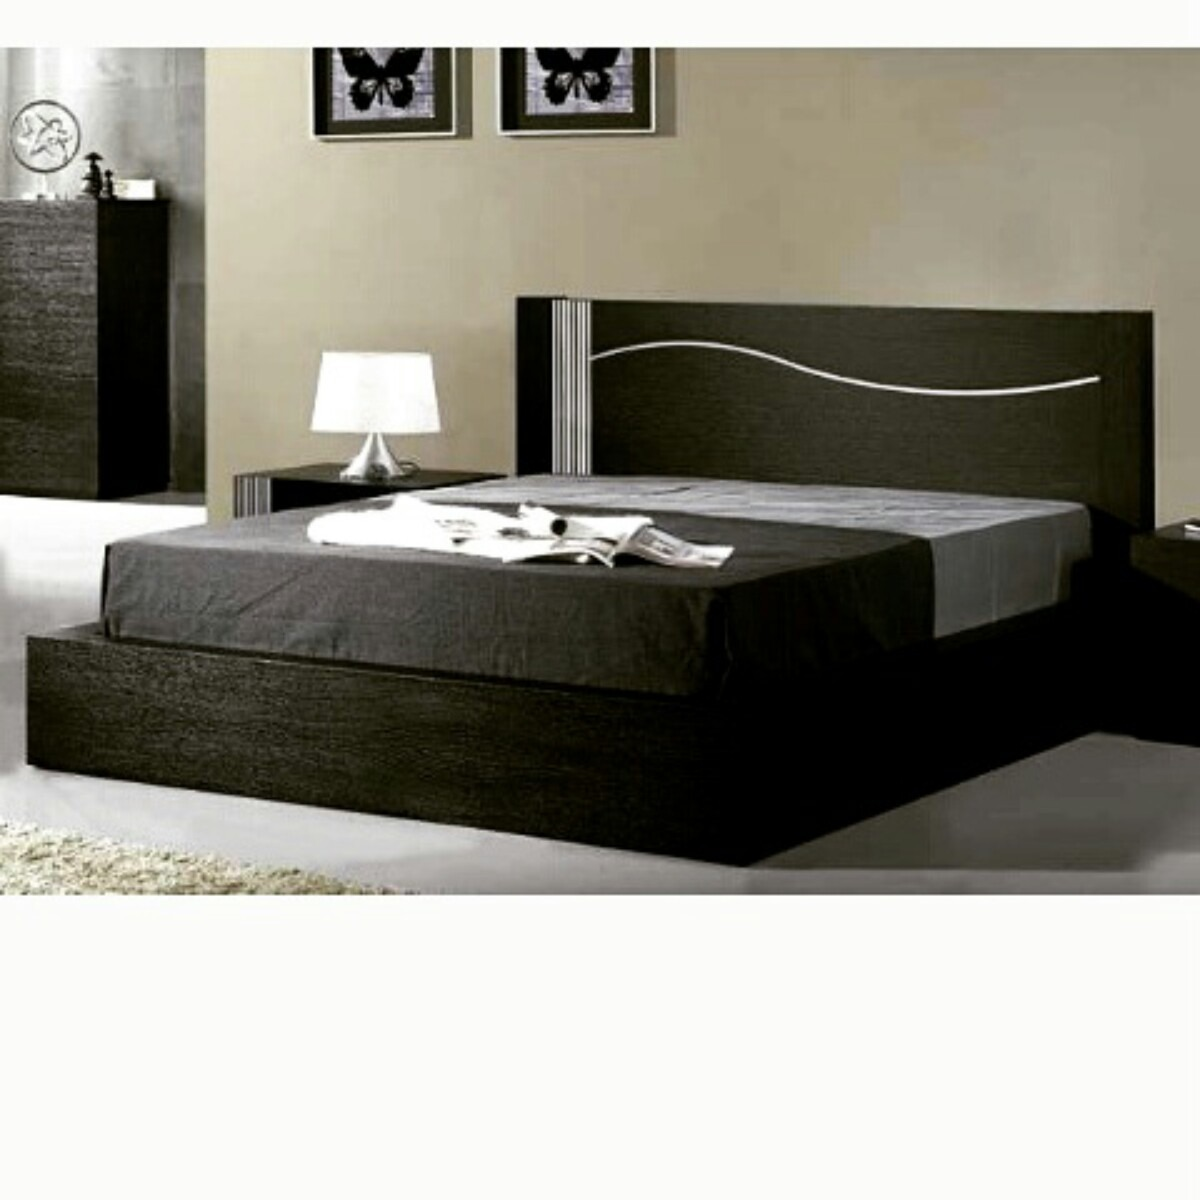 camas matrimoniales queen y king size bs en